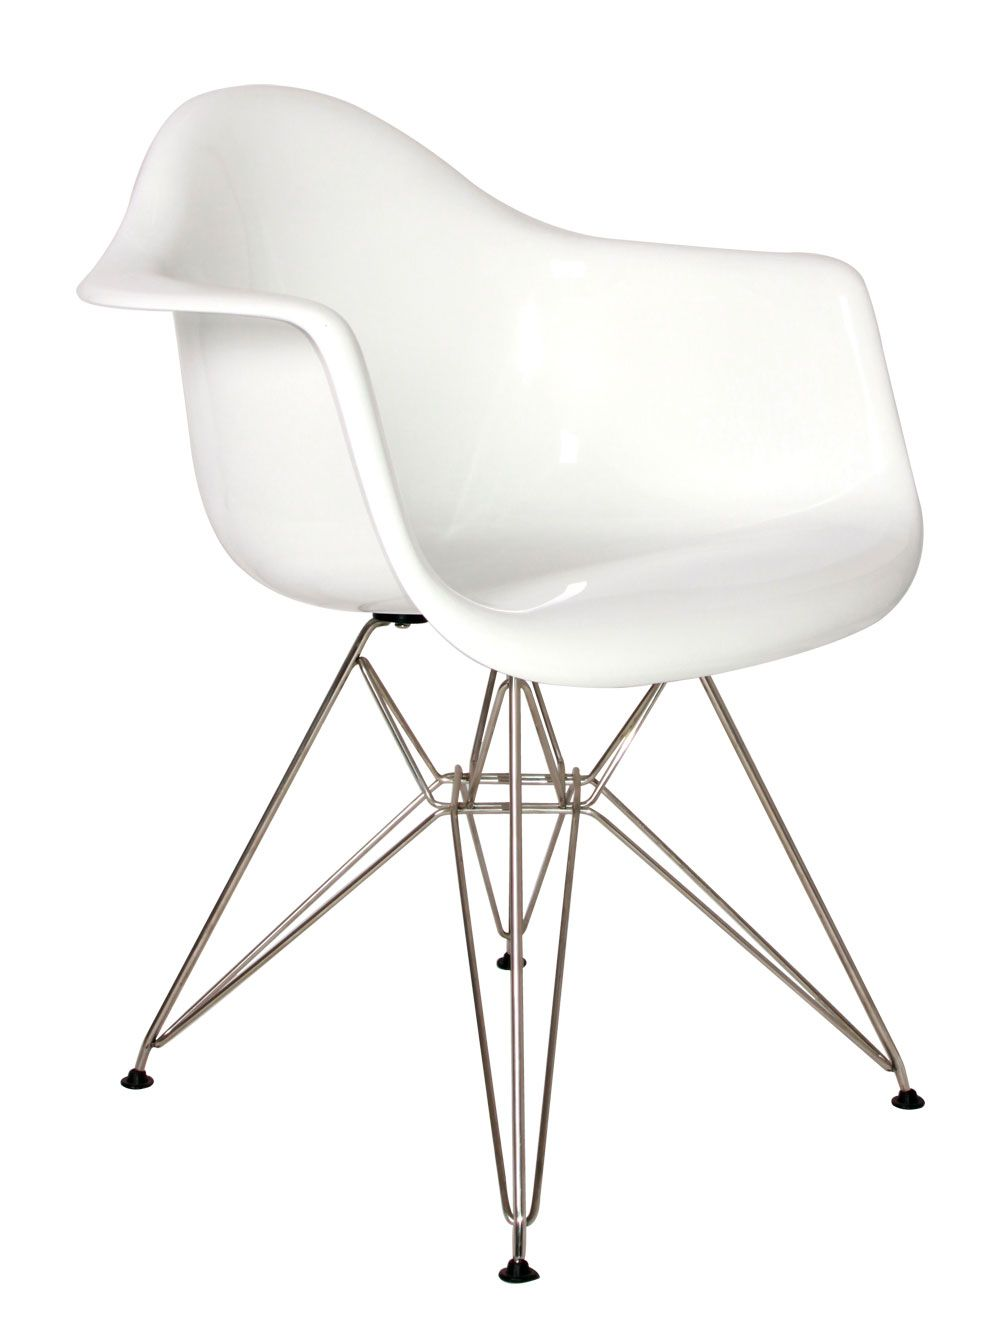 Eames Chair Weiß Charles And Ray Eames / Dar Chair / | Stuhl Design, Eames, Esszimmerstühle Weiß